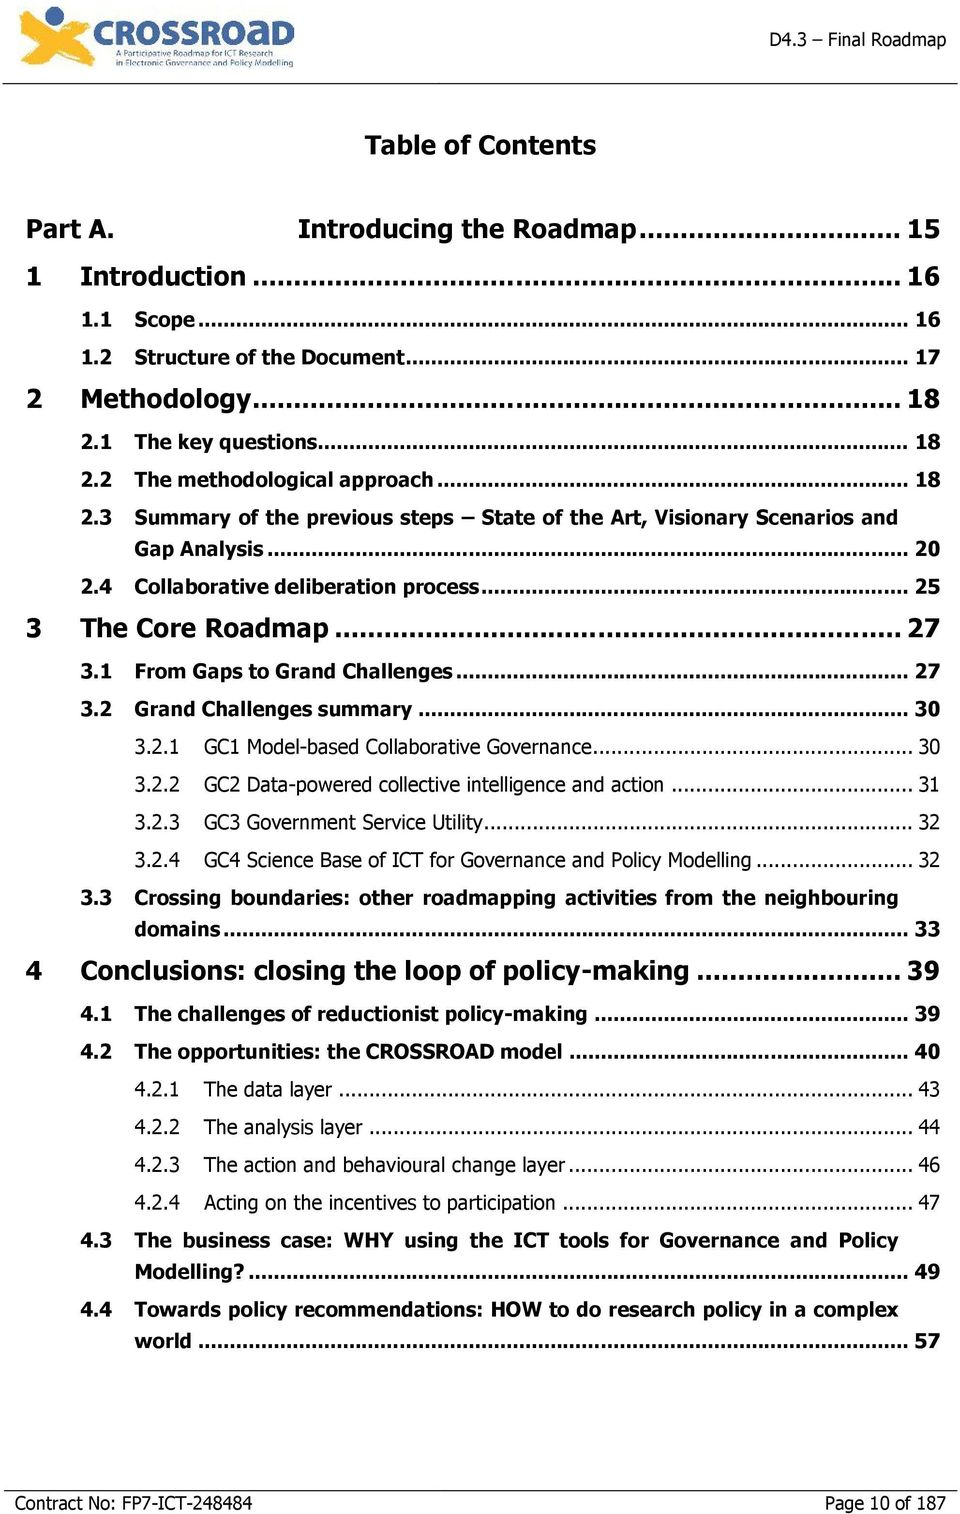 1 From Gaps to Grand Challenges... 27 3.2 Grand Challenges summary... 30 3.3 3.2.1 GC1 Model-based Collaborative Governance... 30 3.2.2 GC2 Data-powered collective intelligence and action... 31 3.2.3 GC3 Government Service Utility.